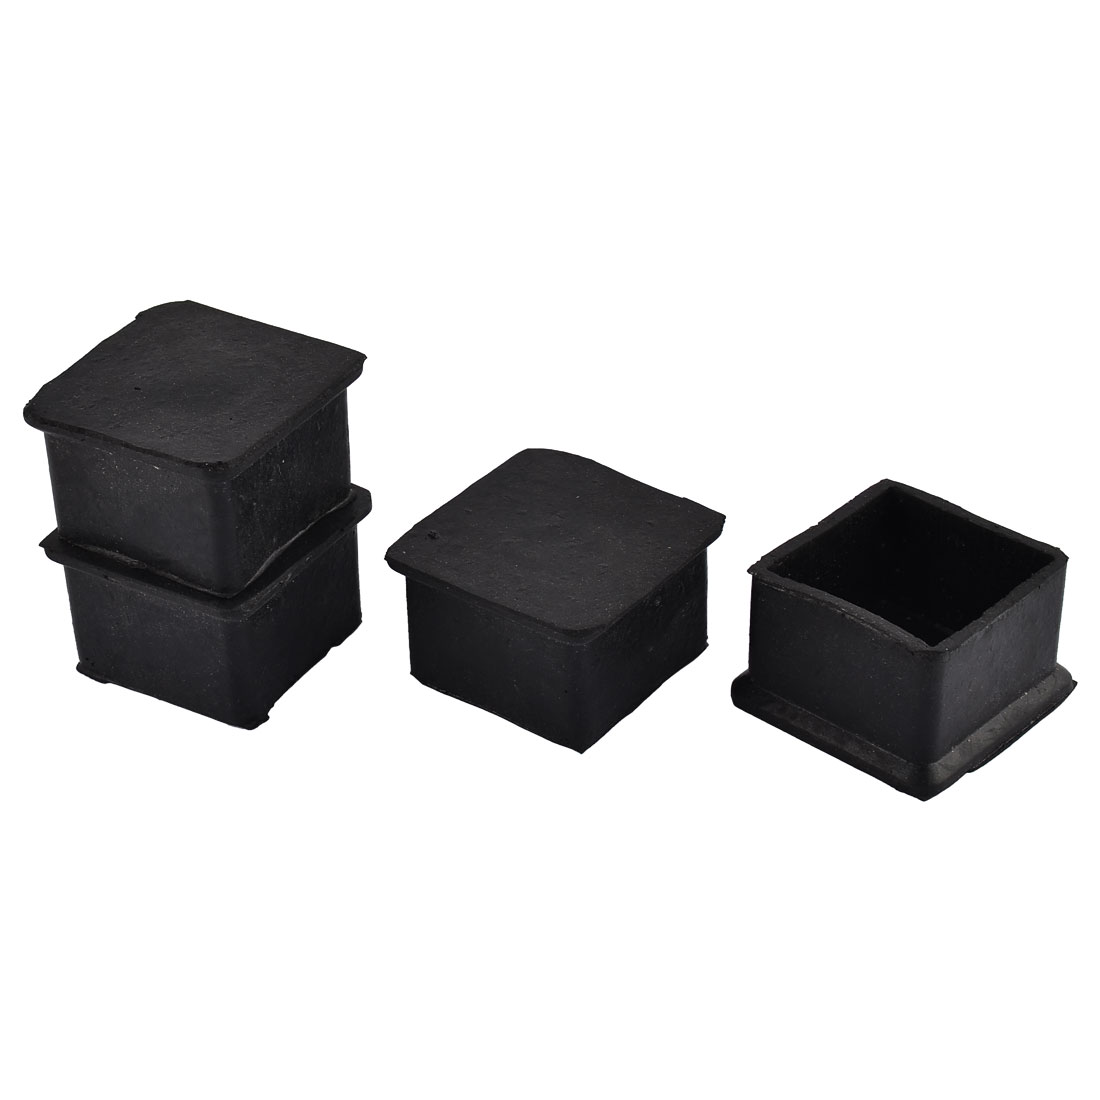 Furniture Table Chair Rubber Square Shape Foot Protector Pad Black 4pcs